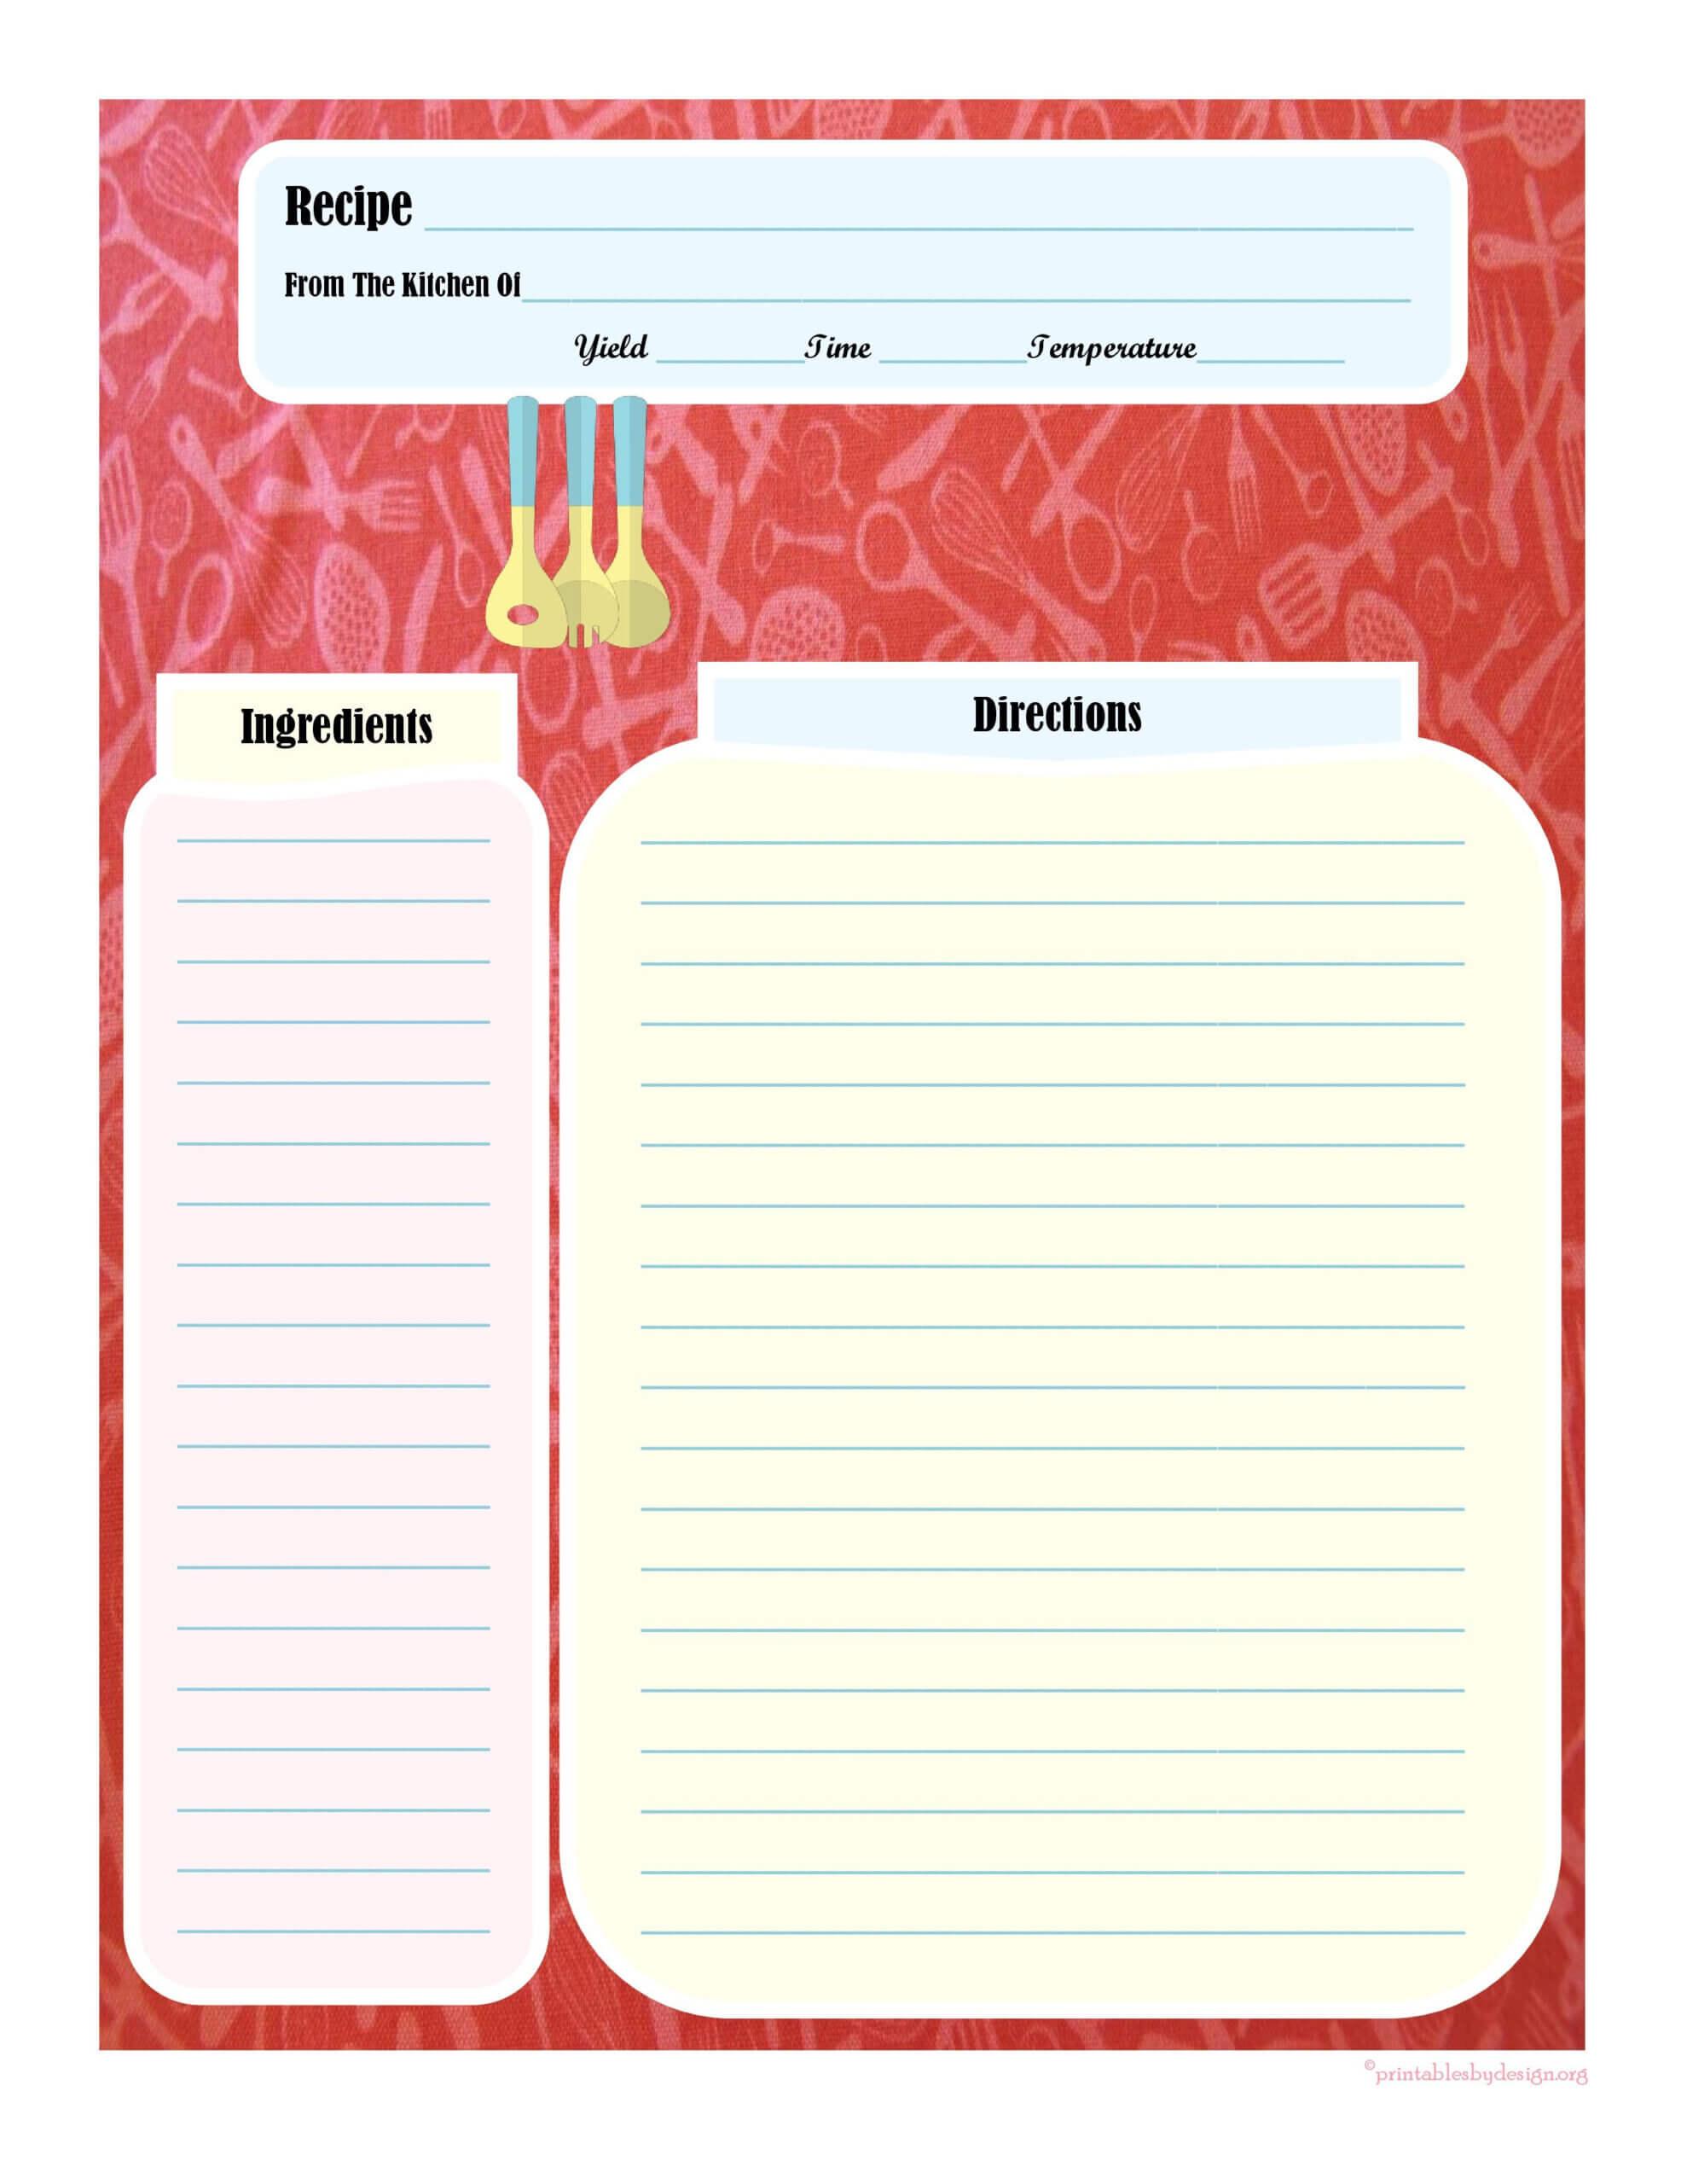 008 Template Ideas Fillable Recipe Card Impressive Free For Intended For Fillable Recipe Card Template